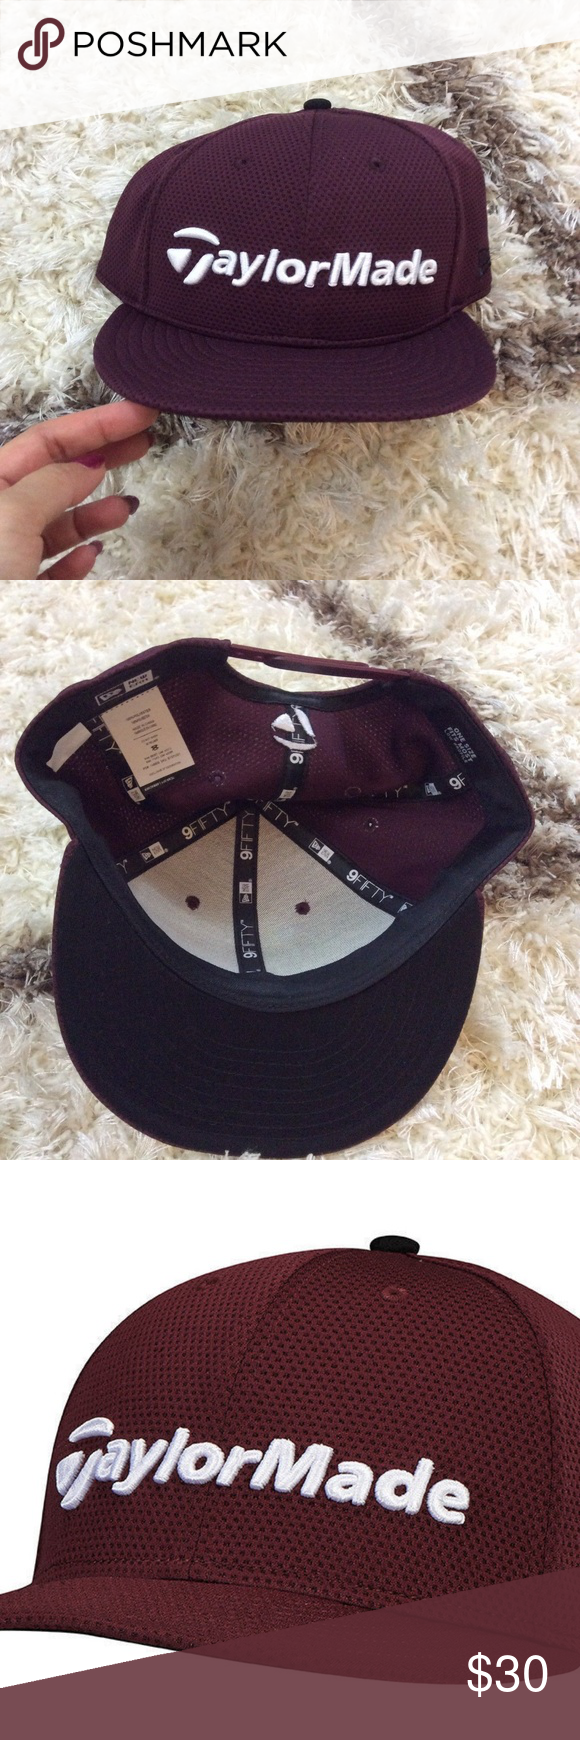 9d8fa1c36d8 TAYLOR MADE Burgundy Maroon Taylor Made Hat NWT